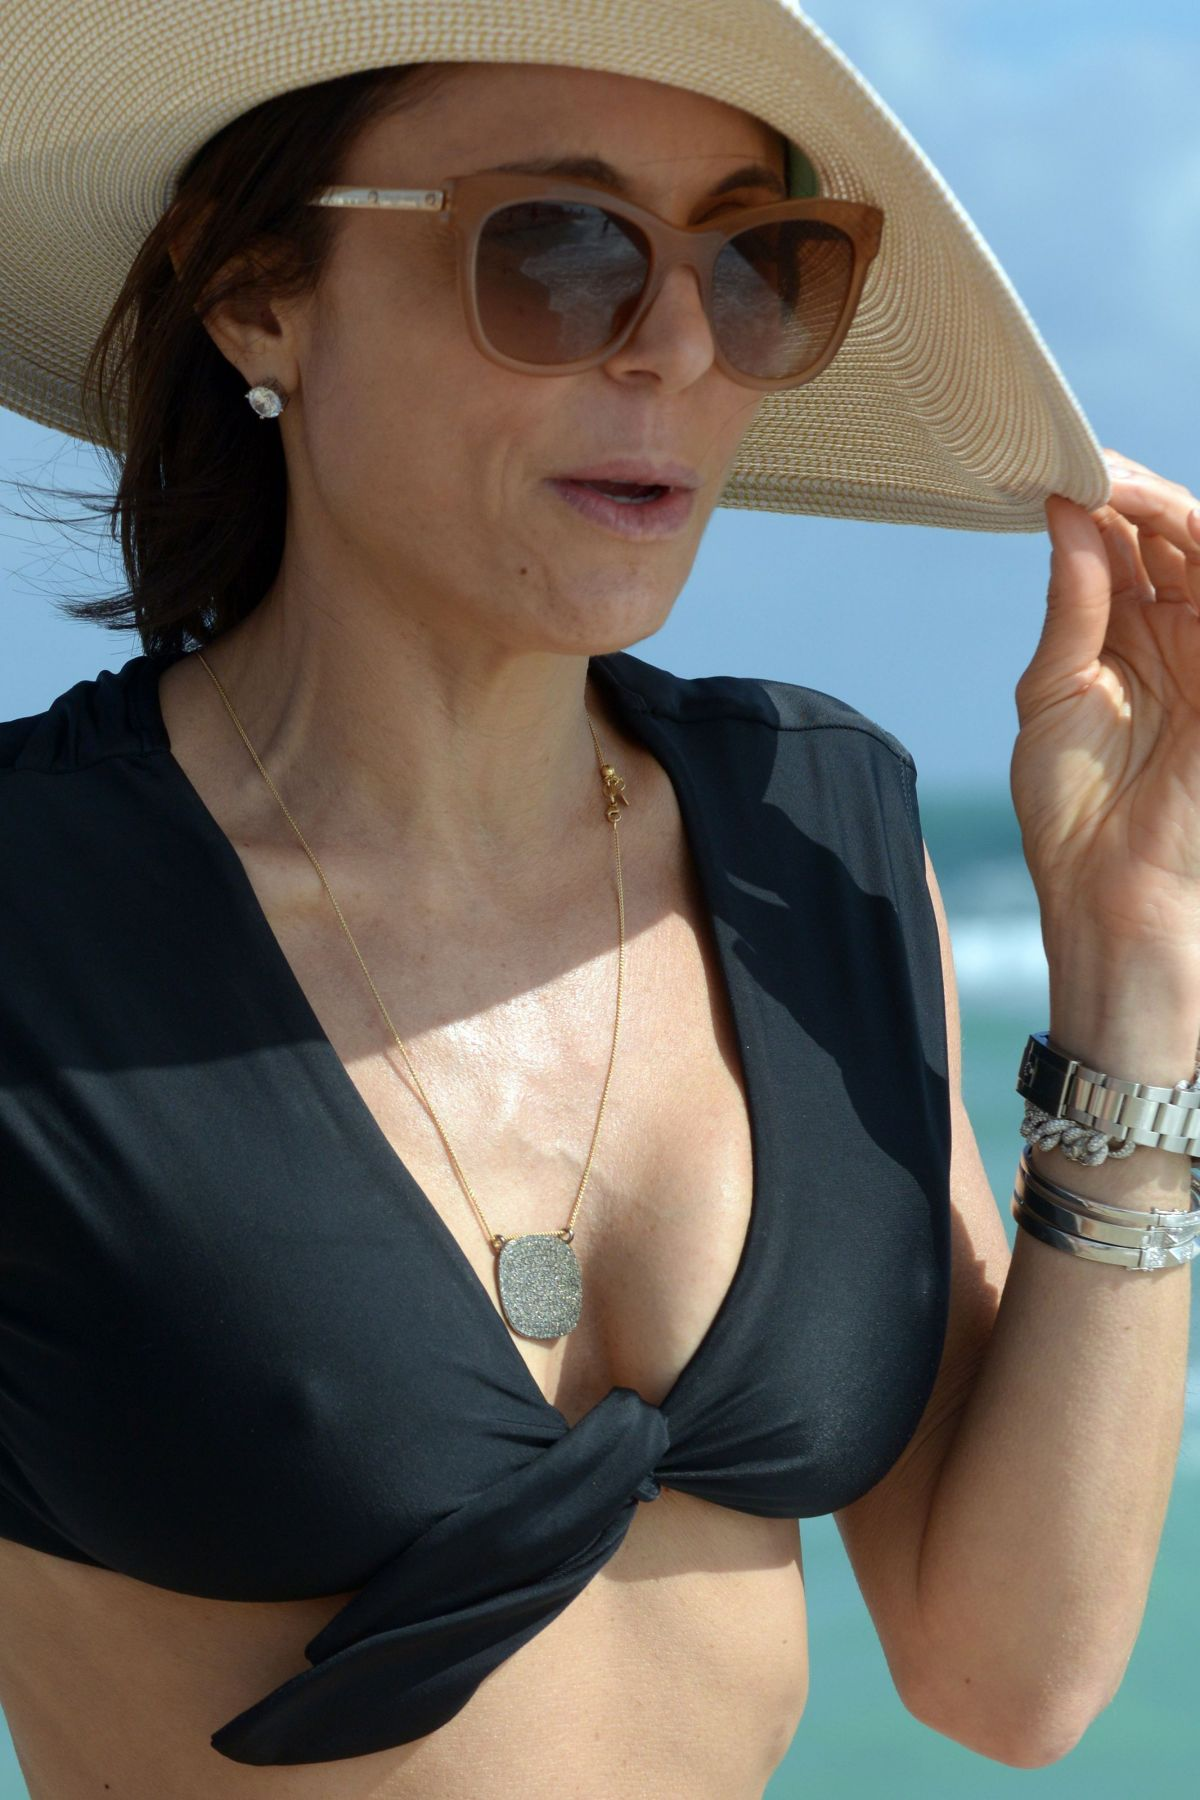 BETHENNY FRANKEL in Bikini on the Beach in Miami 12/05/2016   bethenny-frankel-in-bikini-on-the-beach-in-miami-12-05-2016_48